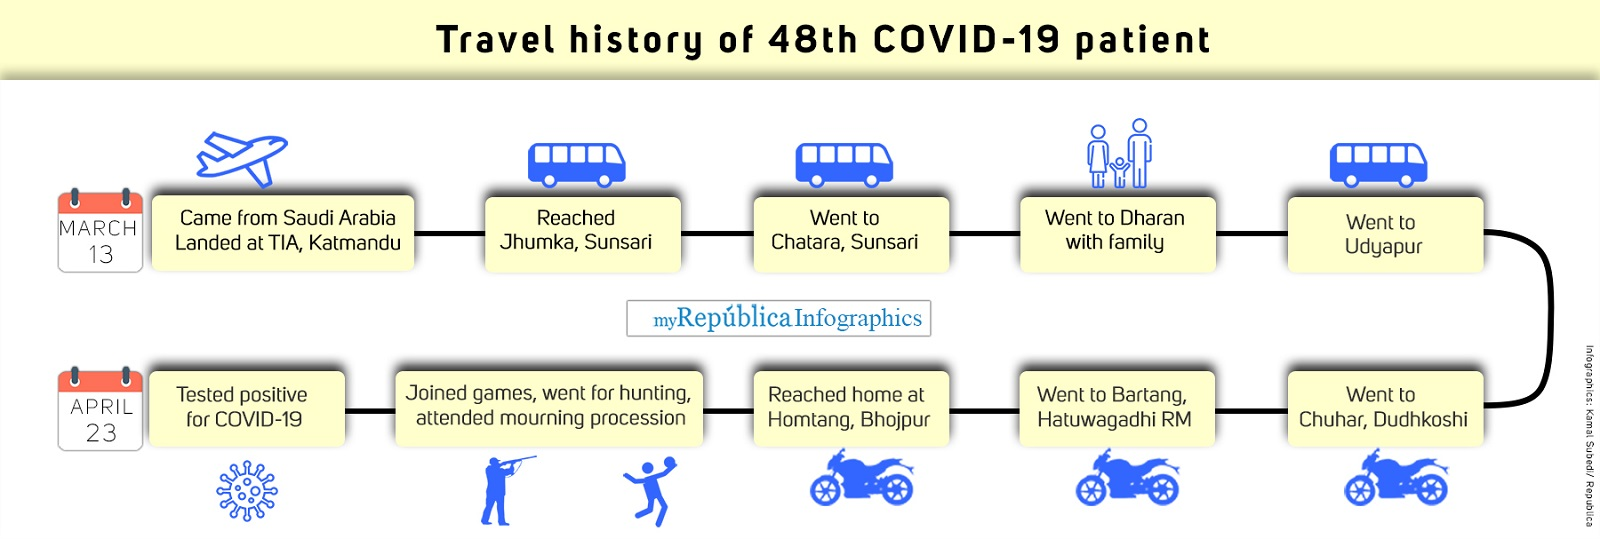 The 48th COVID-19 patient traveled far and wide